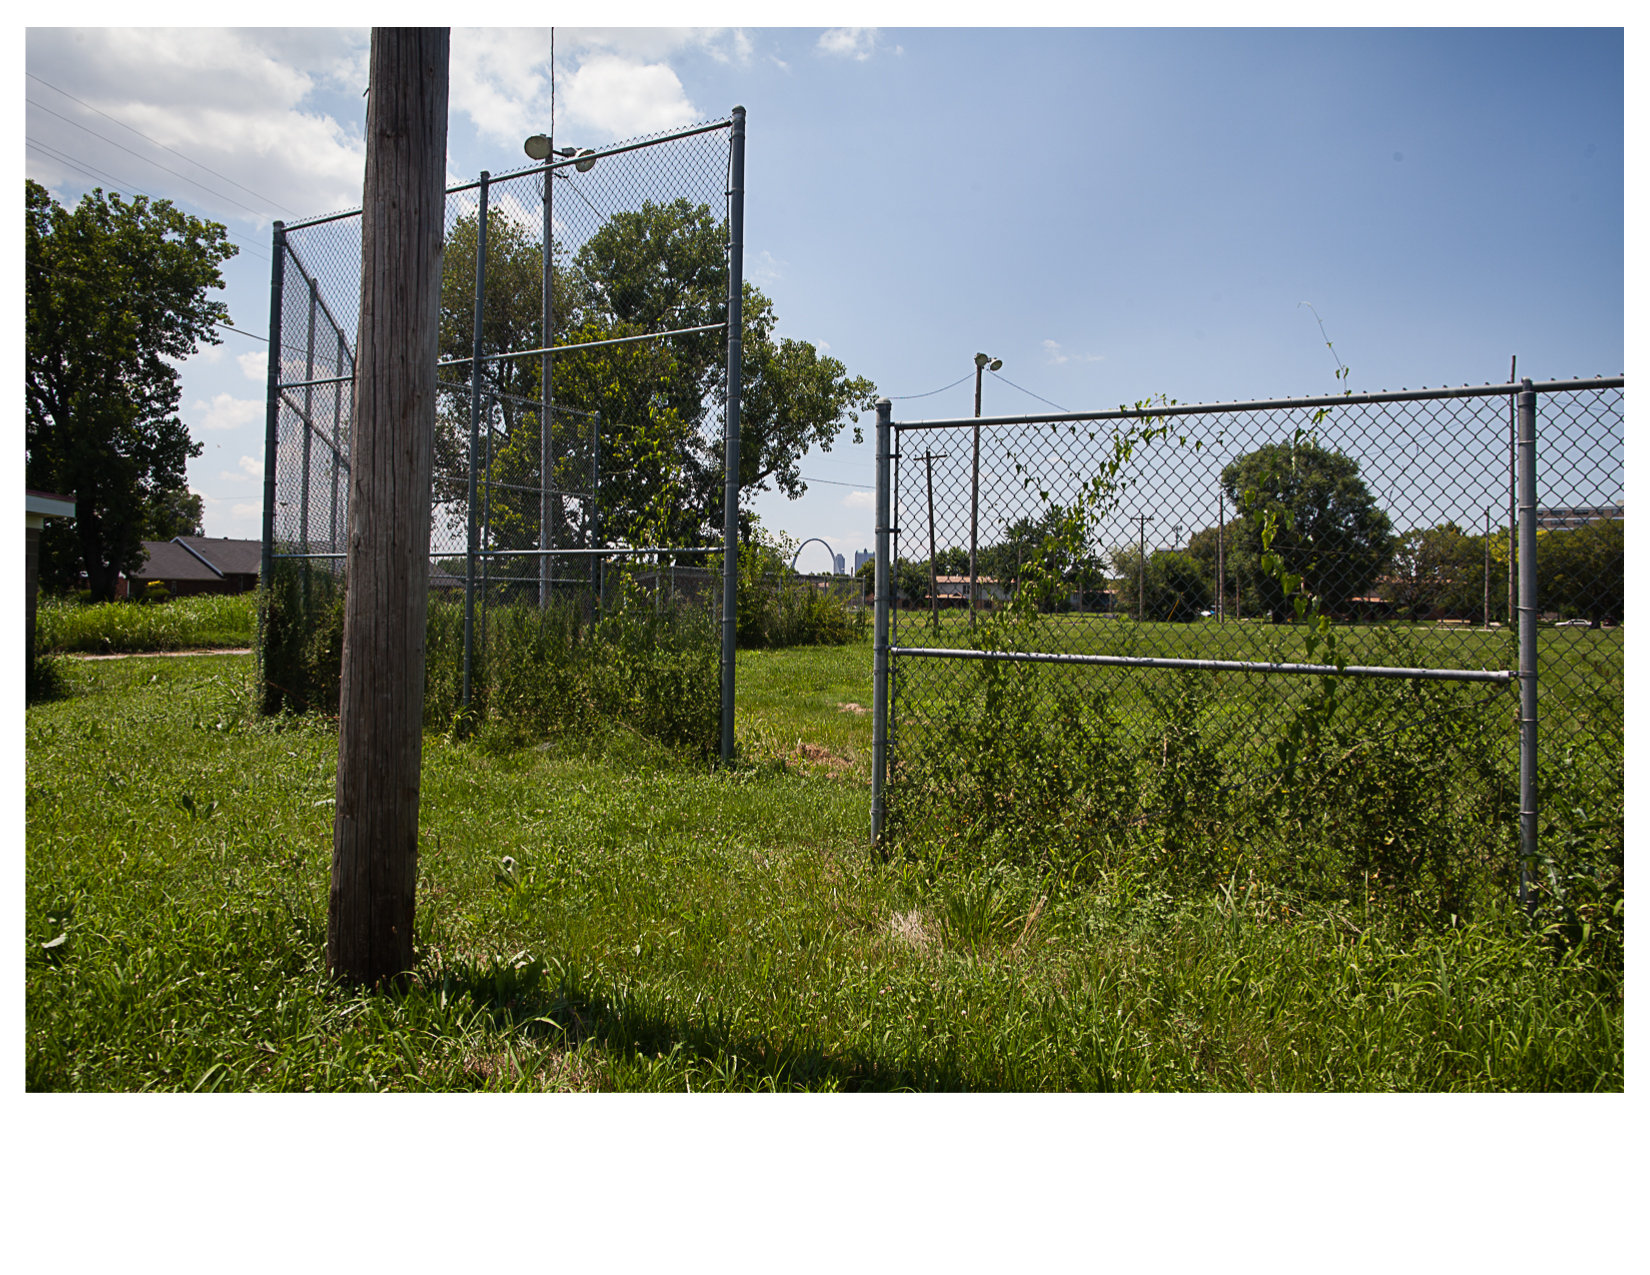 Abandoned Ball Field, East St. Louis, IL